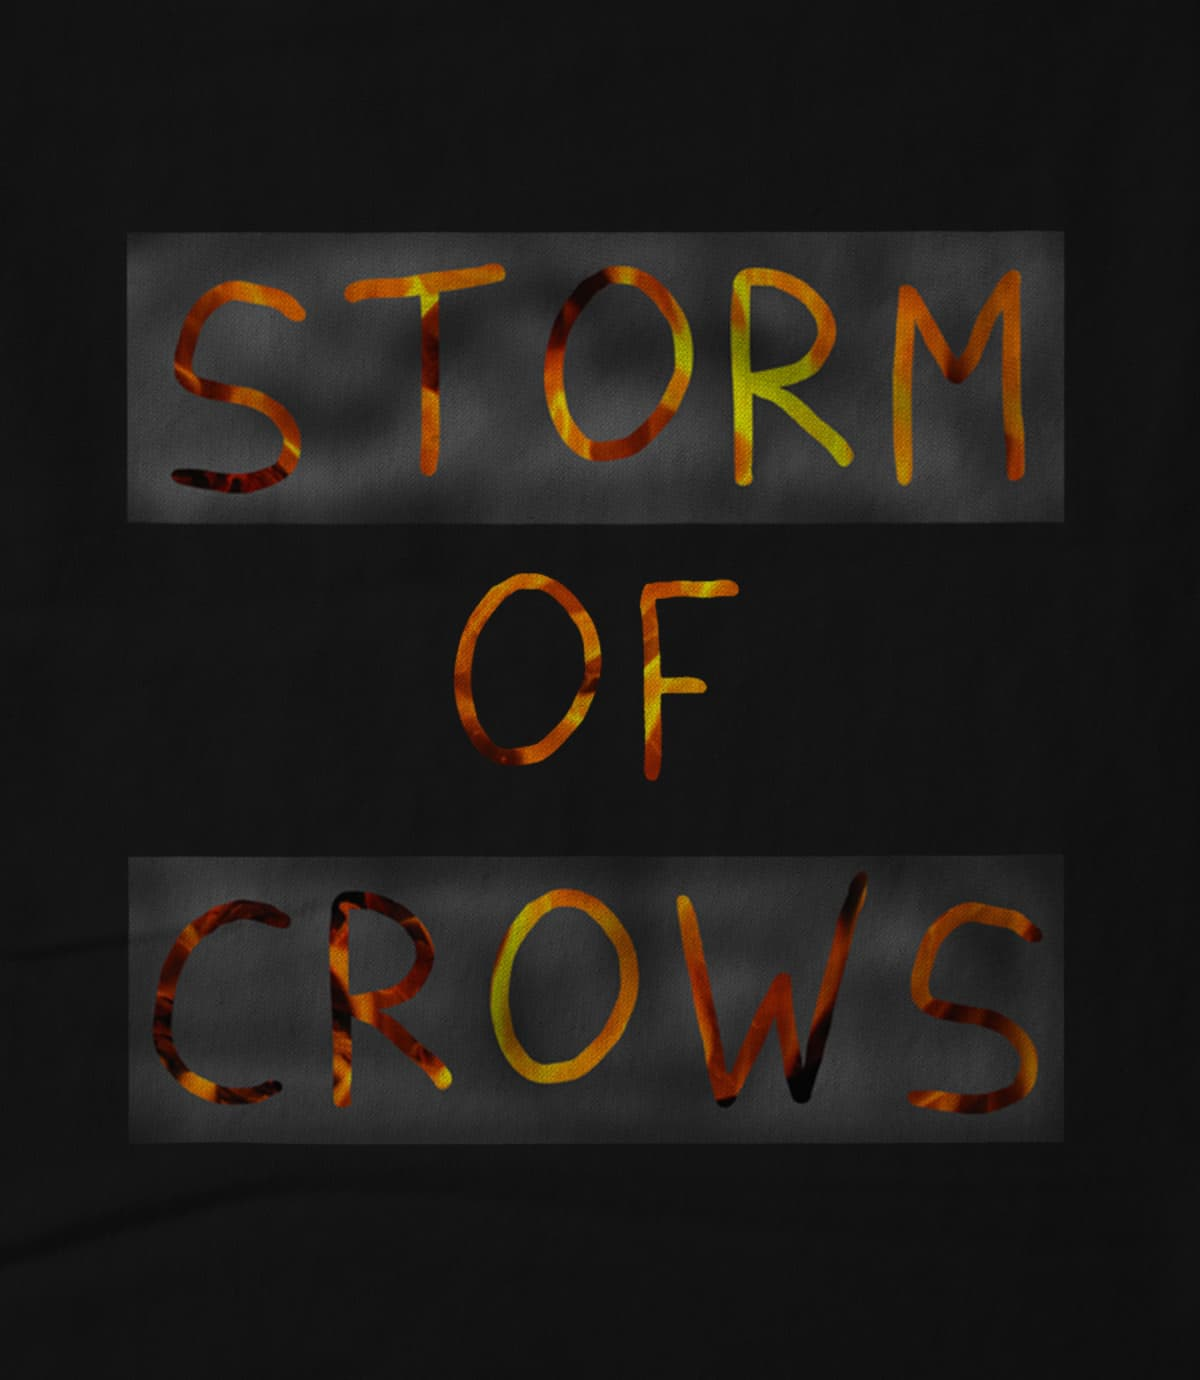 Storm of Crows